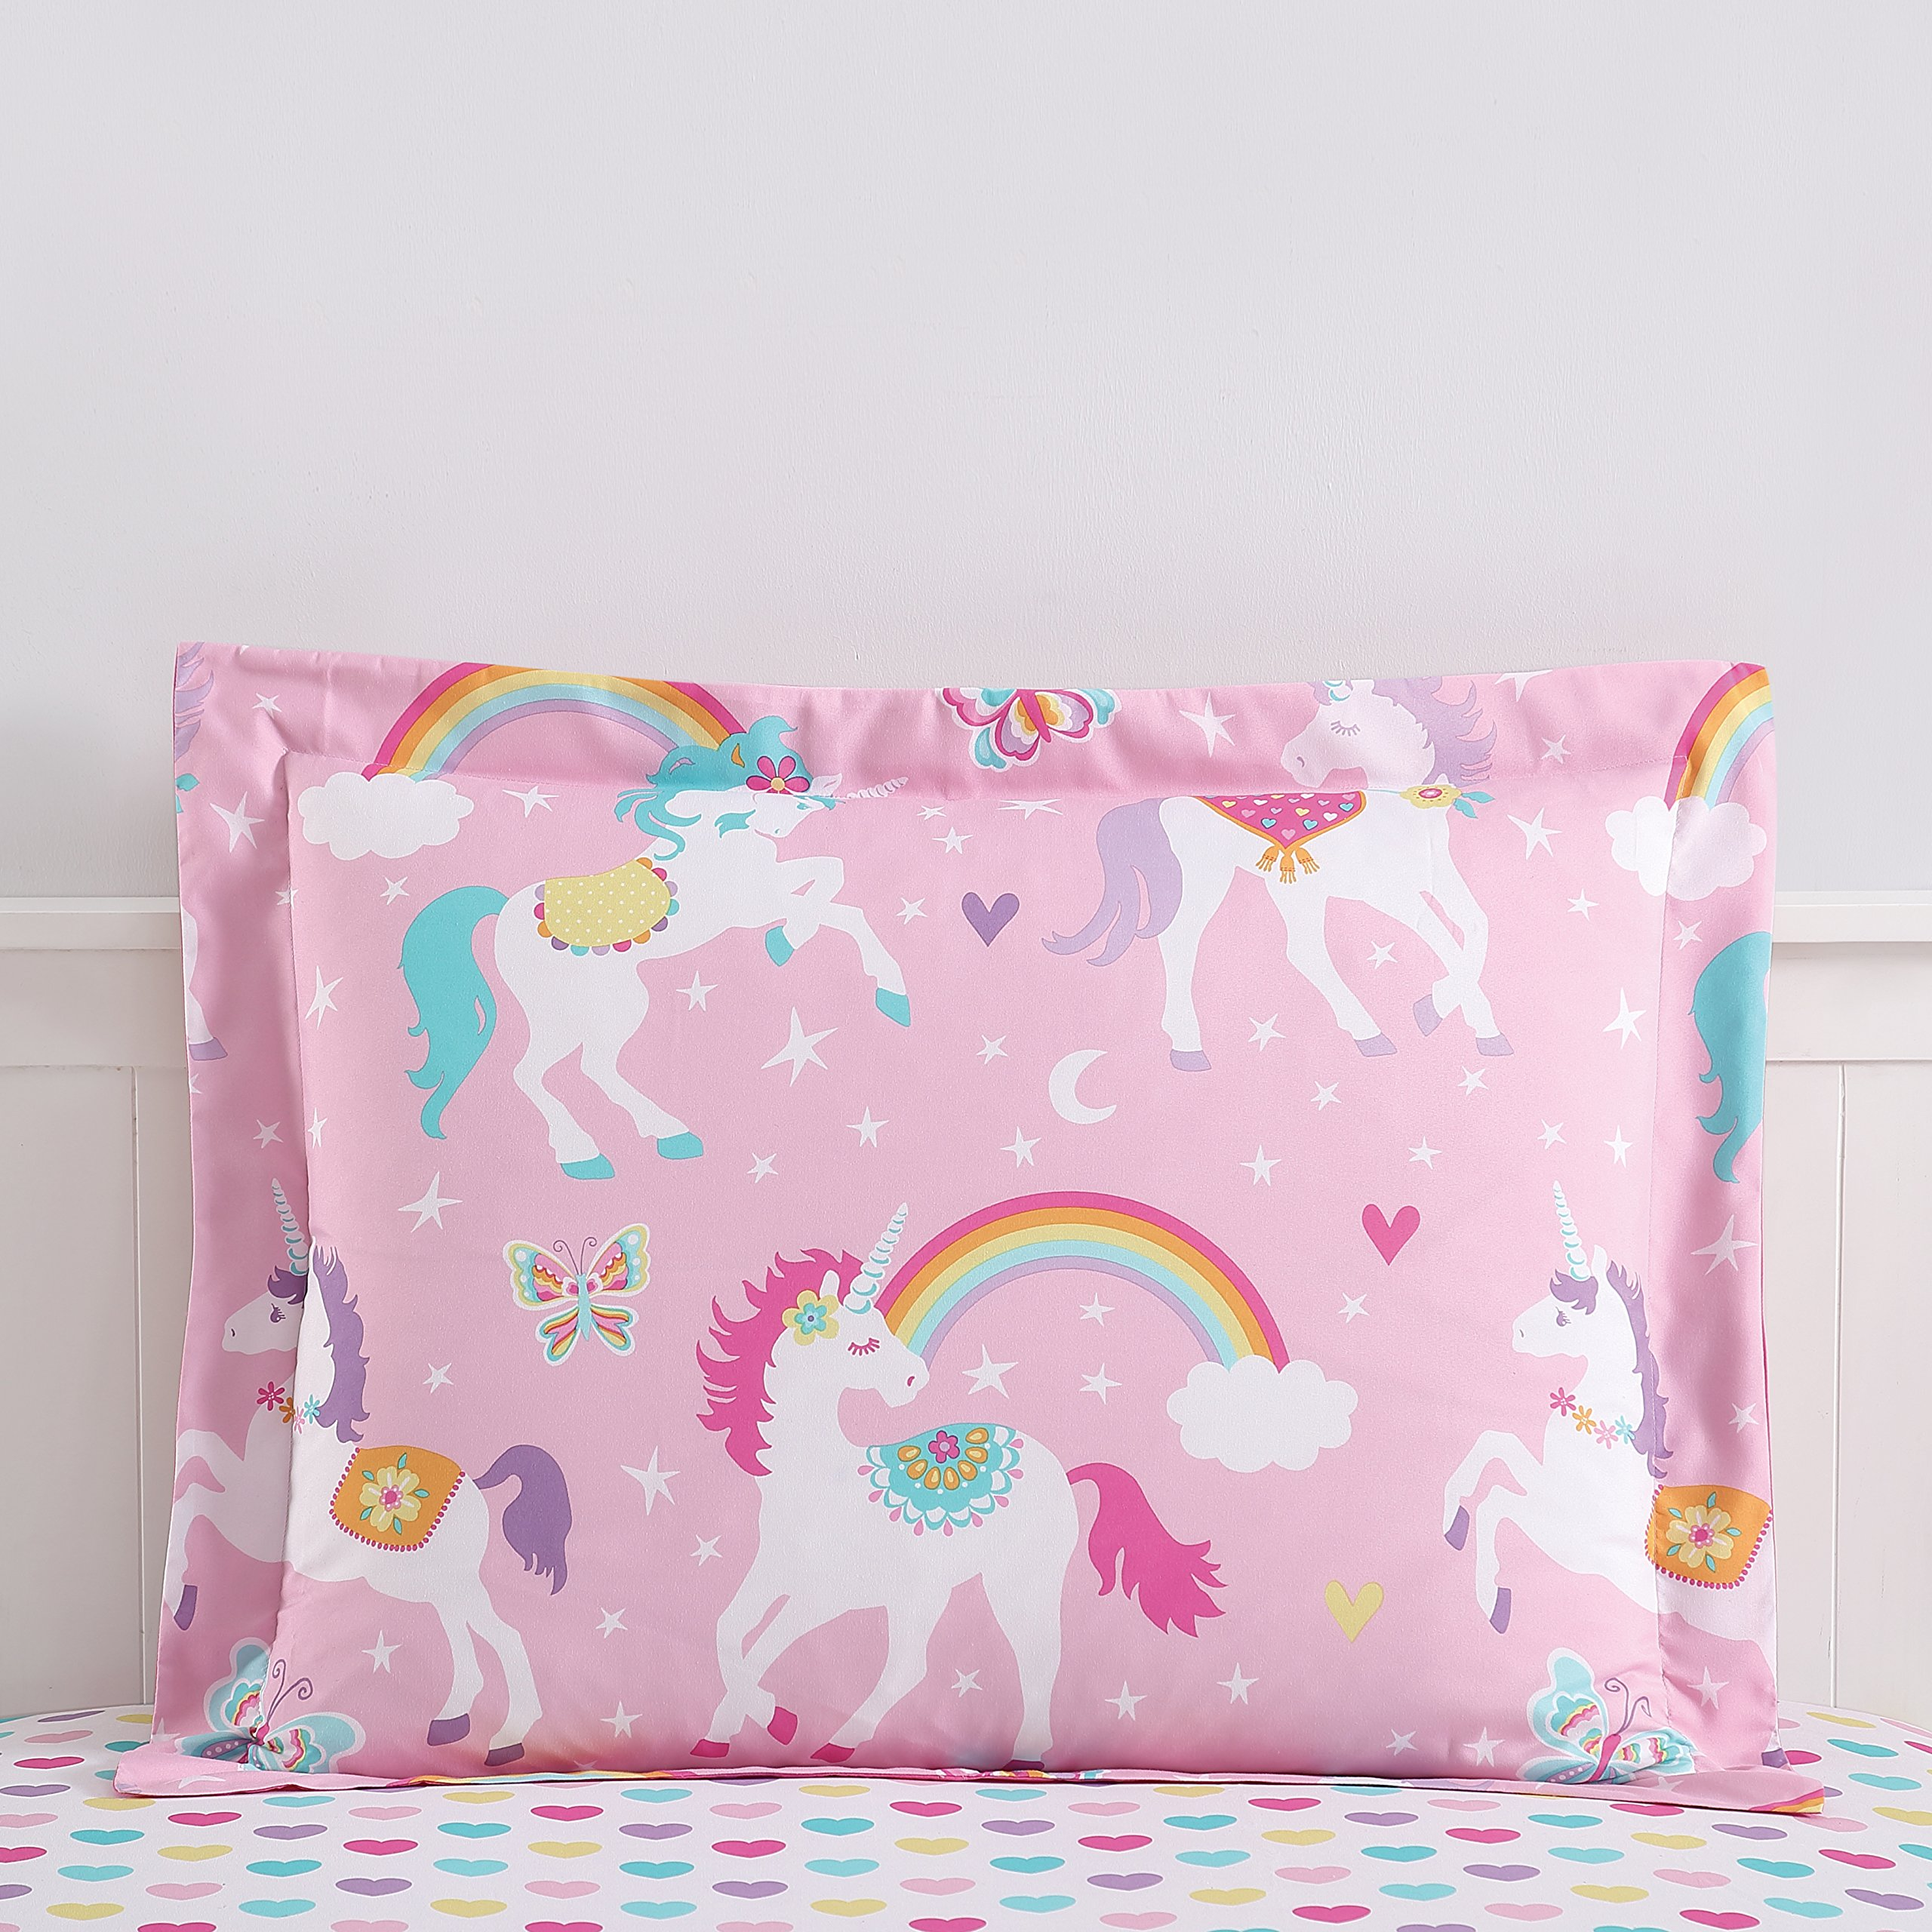 Super Soft Cute Fun and Whimsical Mainstays Kids Rainbow Unicorn With Images a